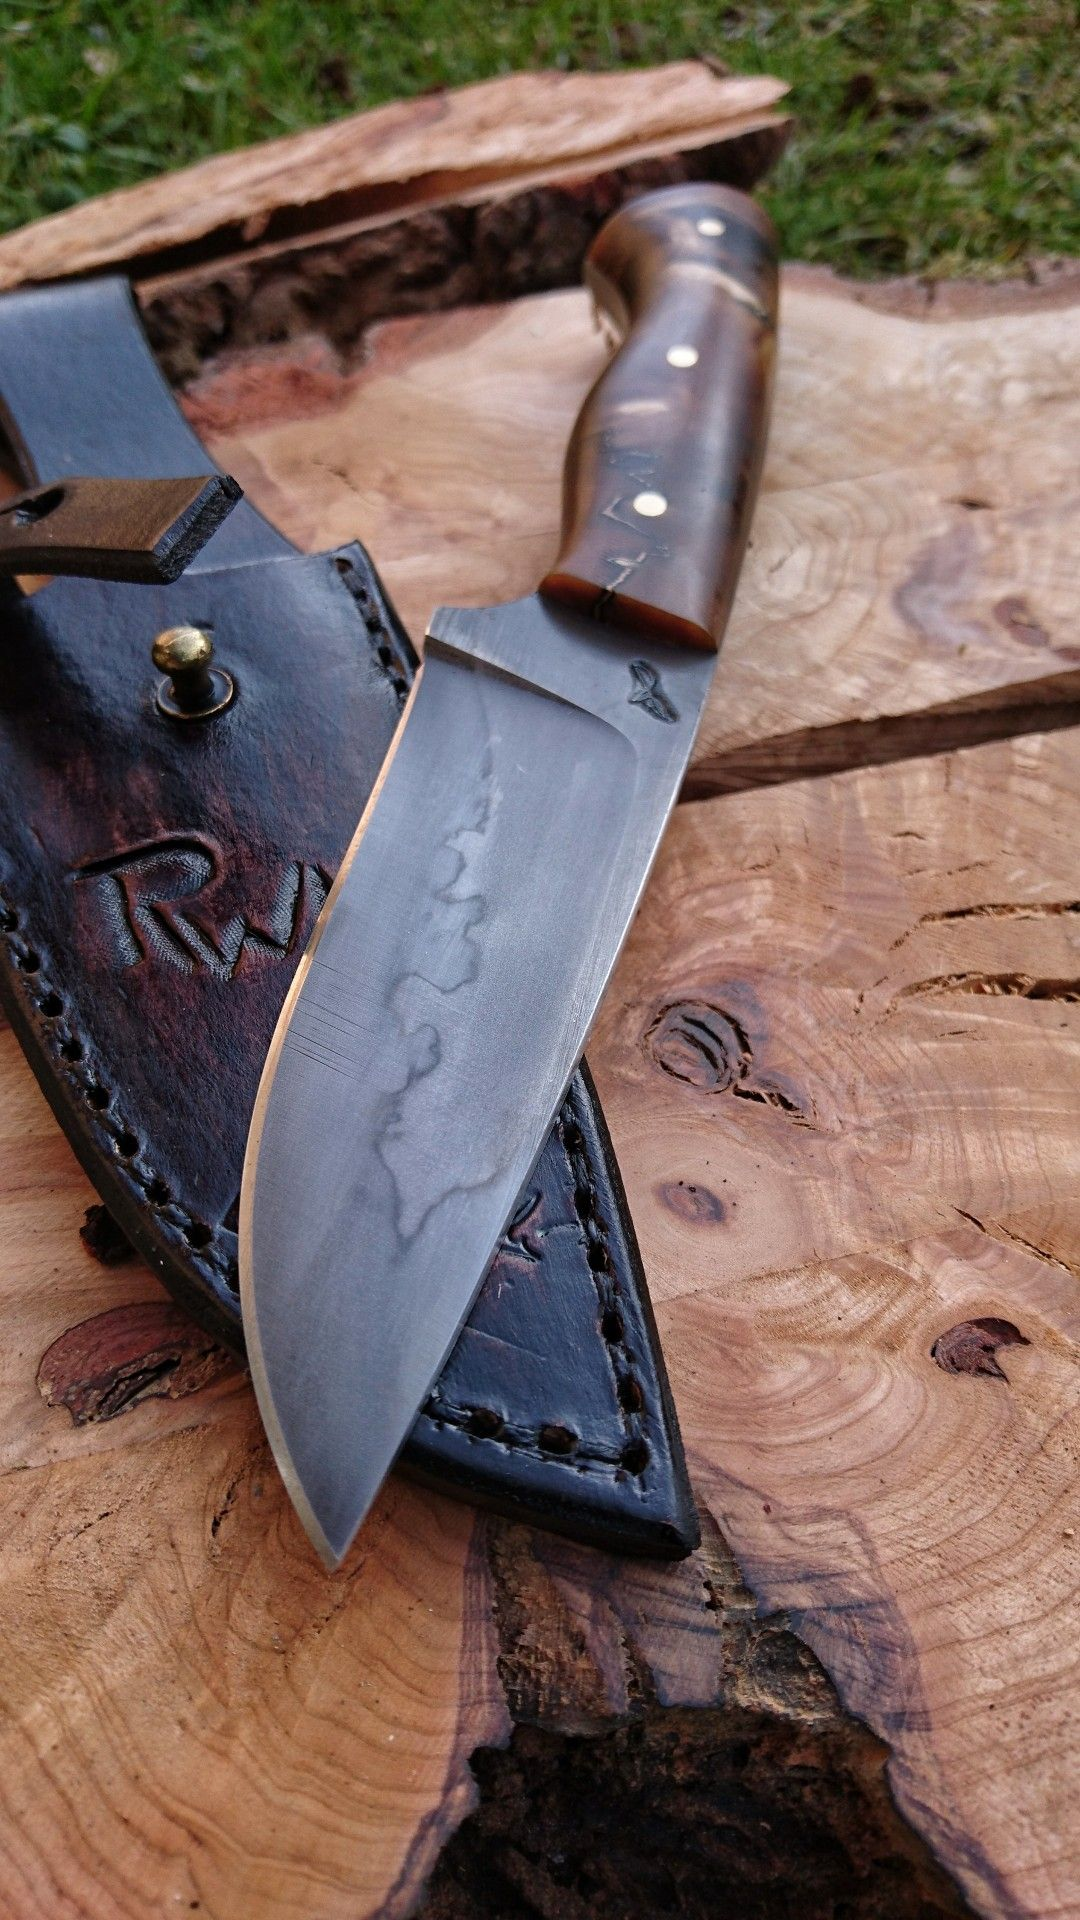 Pin By Ernest Hobart On Knives Pinterest Messer Neue Wege And